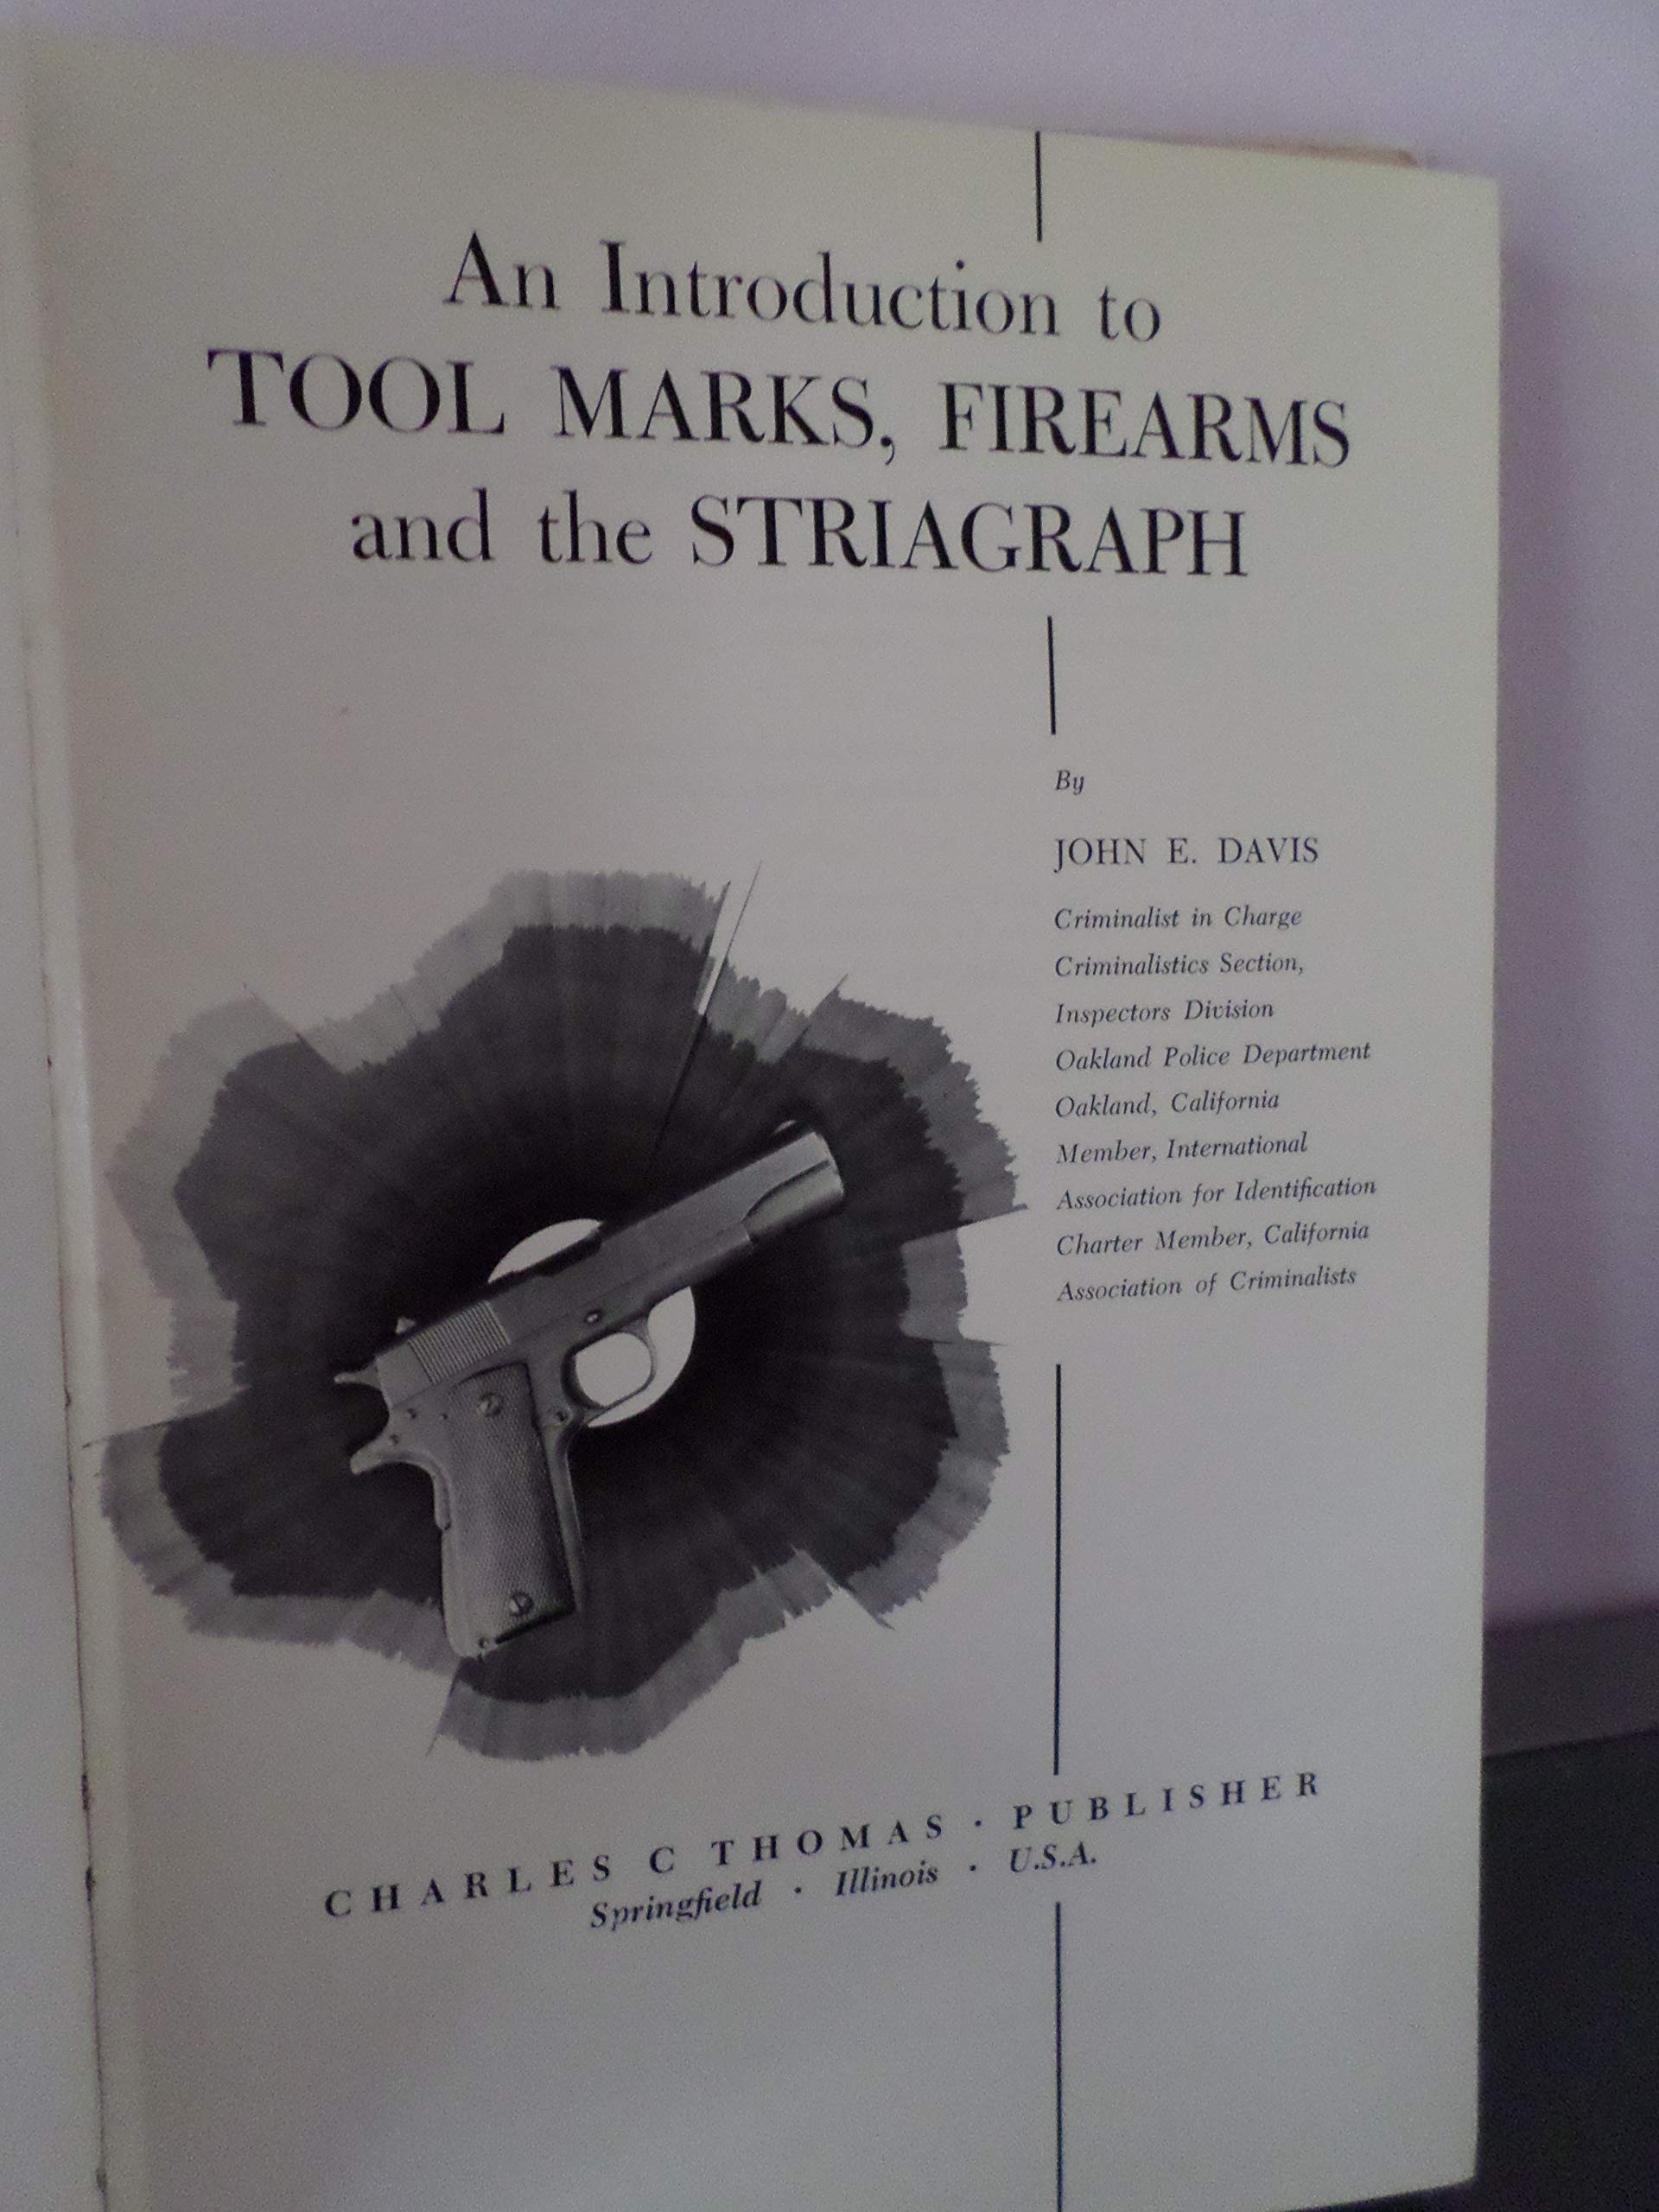 an introduction to tool marks firearms and the striagraph davis john e